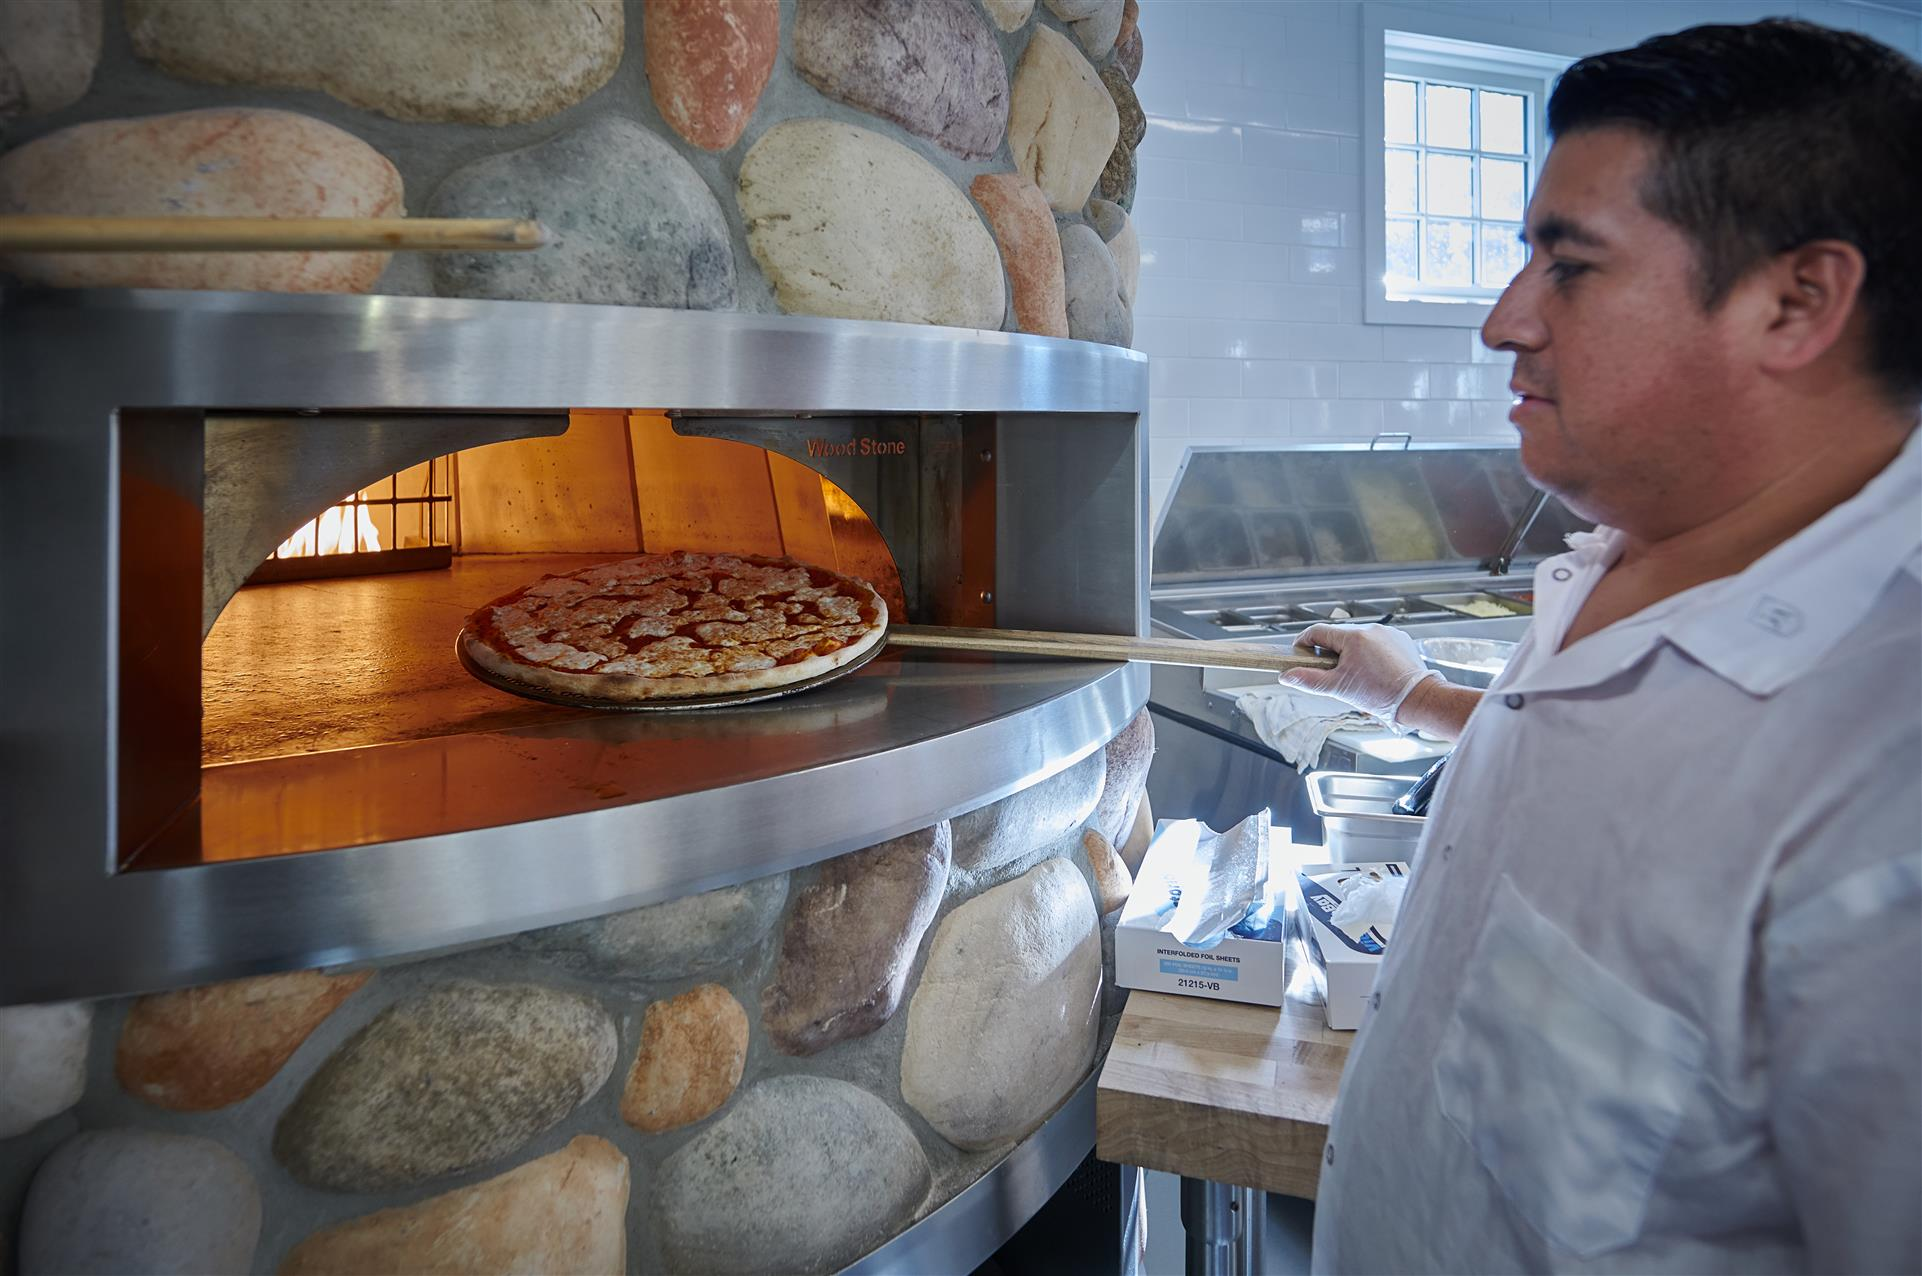 chef taking a pizza out of the oven